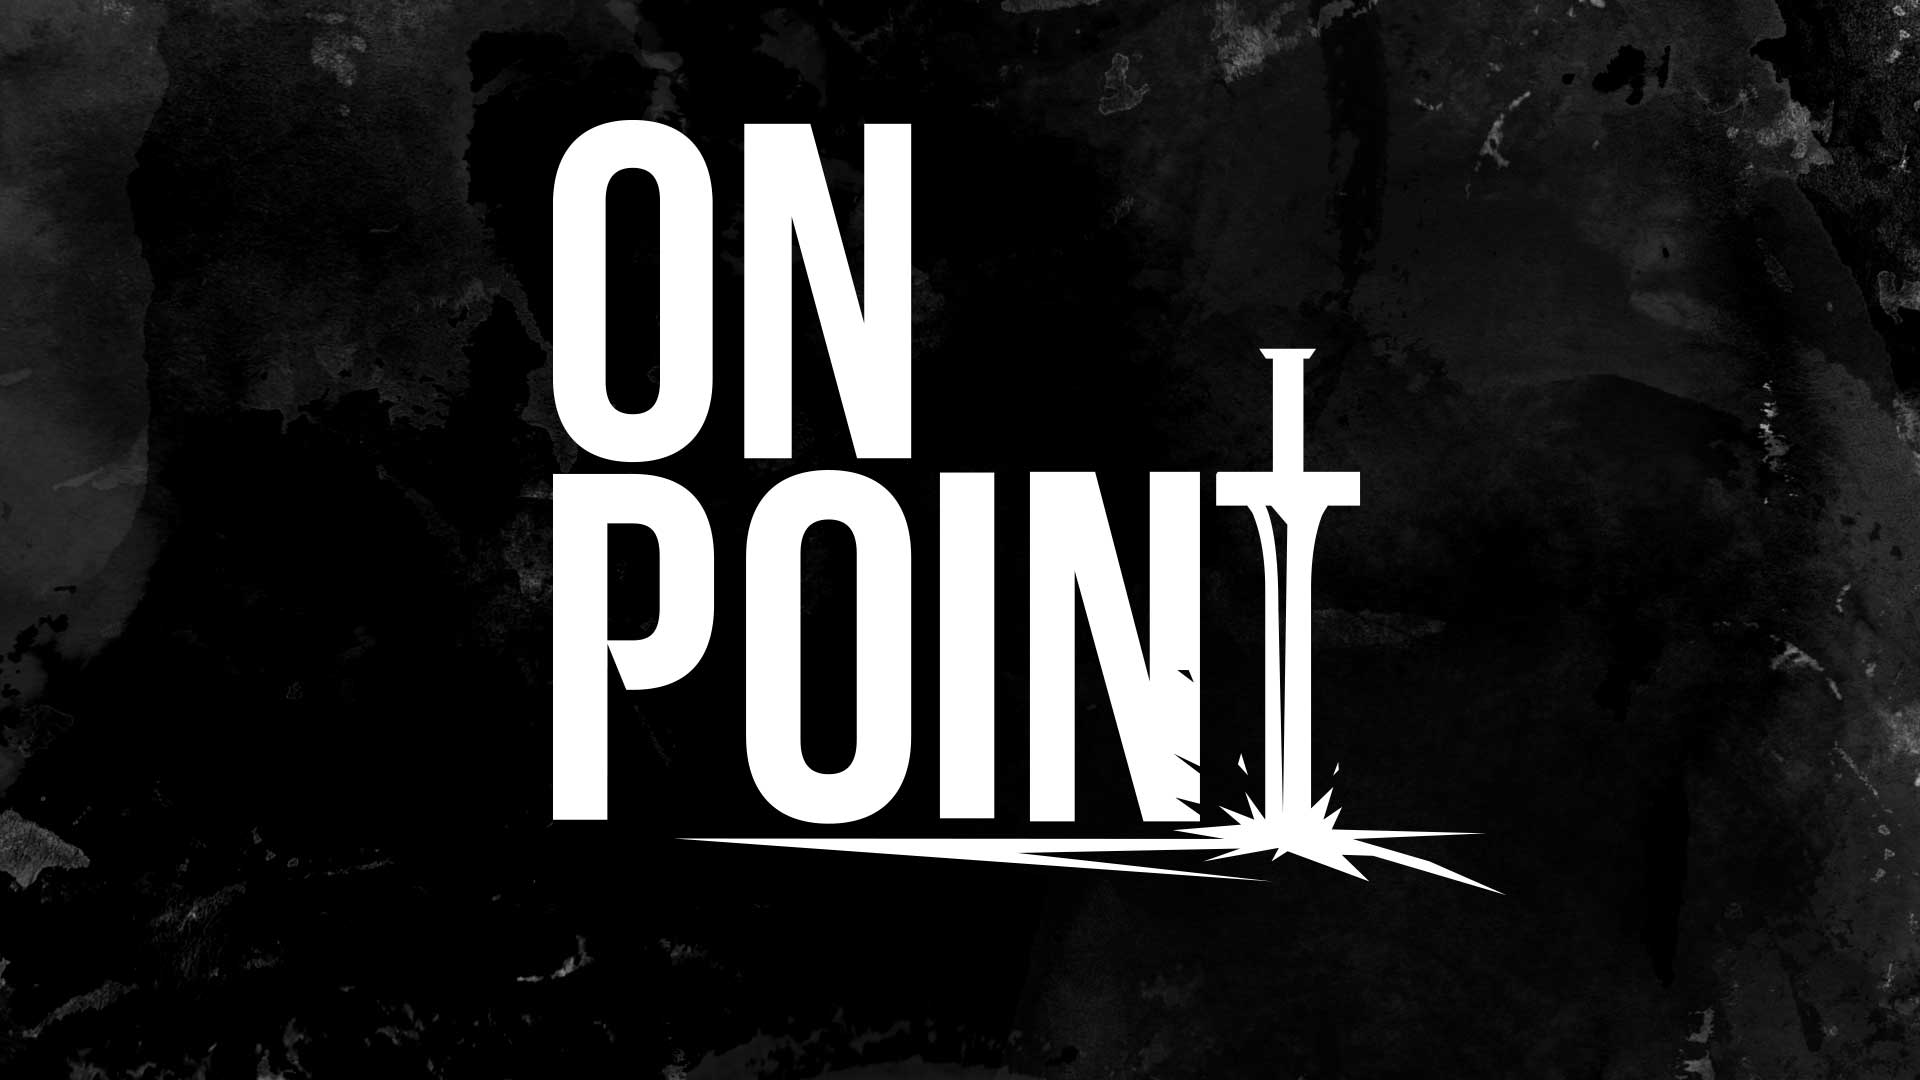 new point chatrooms Monday-friday 6:00am-10:00am listen to the rizzuto show, featuring rizzuto, patrico, burton, and moon every weekday morning to get your fill of crap on celebrities, headline hooshe, craigslist freak of the week, and more.